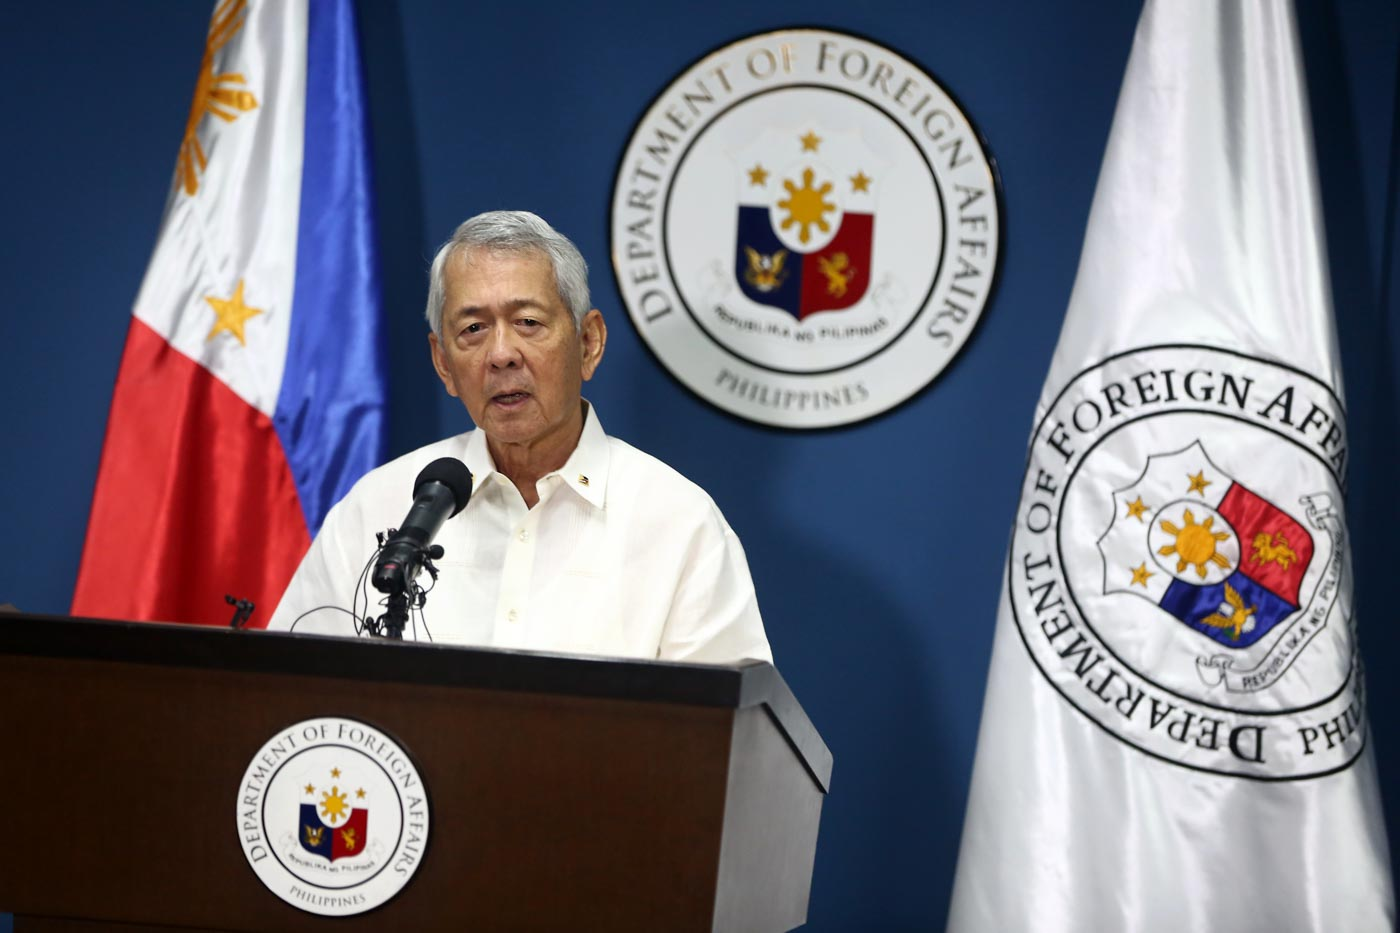 Verbal communication skills  Communication skills and Marital     PHL issued note verbale to China for concerns on disputed areas     Yasay https